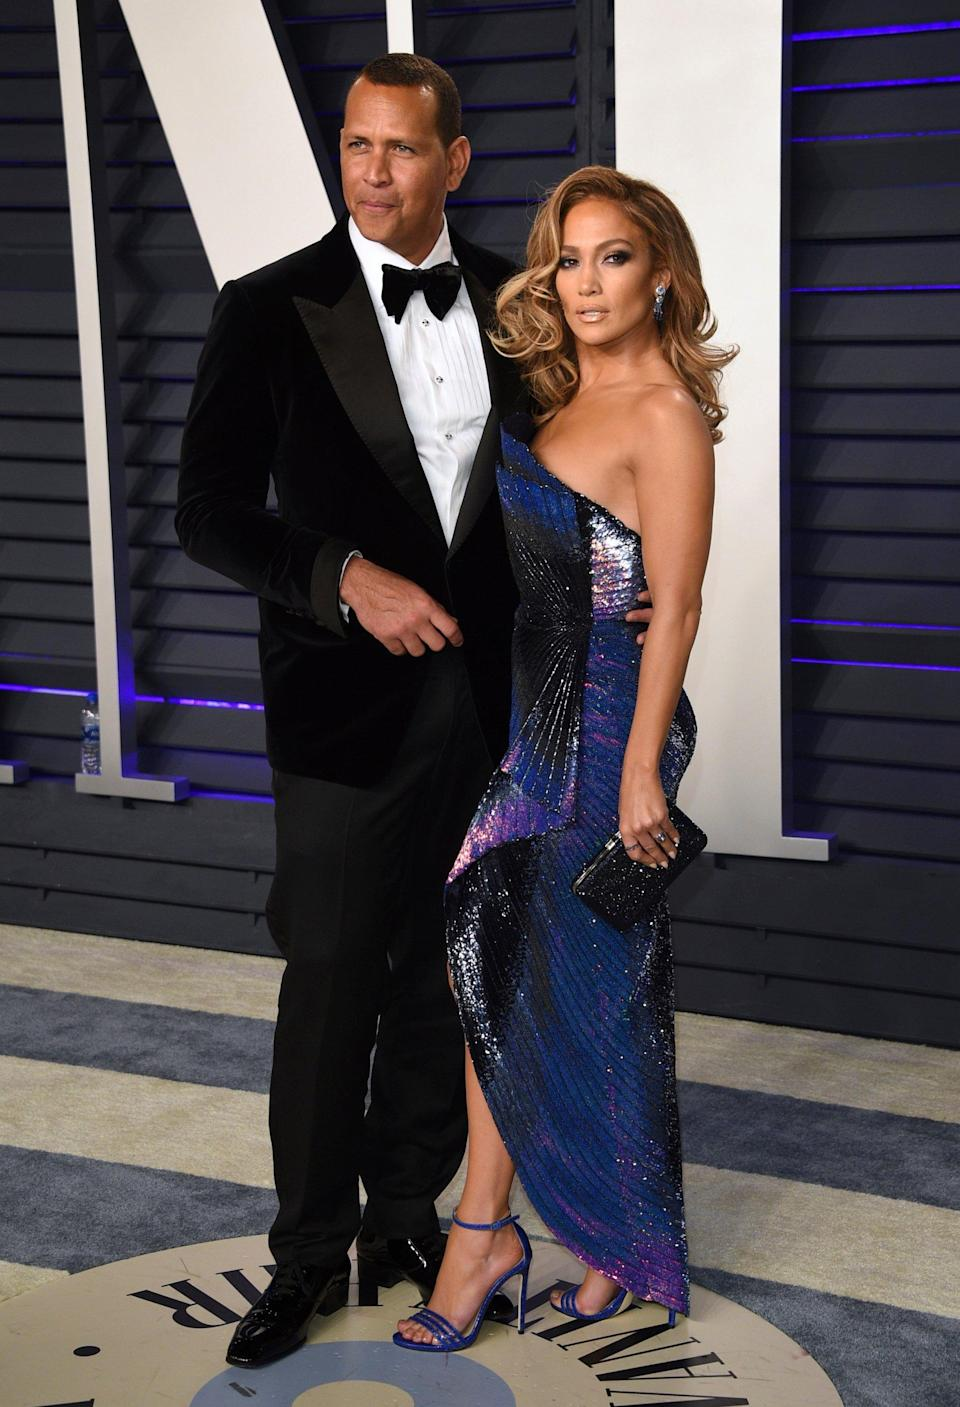 Accusations: Jennifer Lopez and Alex Rodriguez pictured at the Vanity Fair Oscars party last month (Invision/AP)